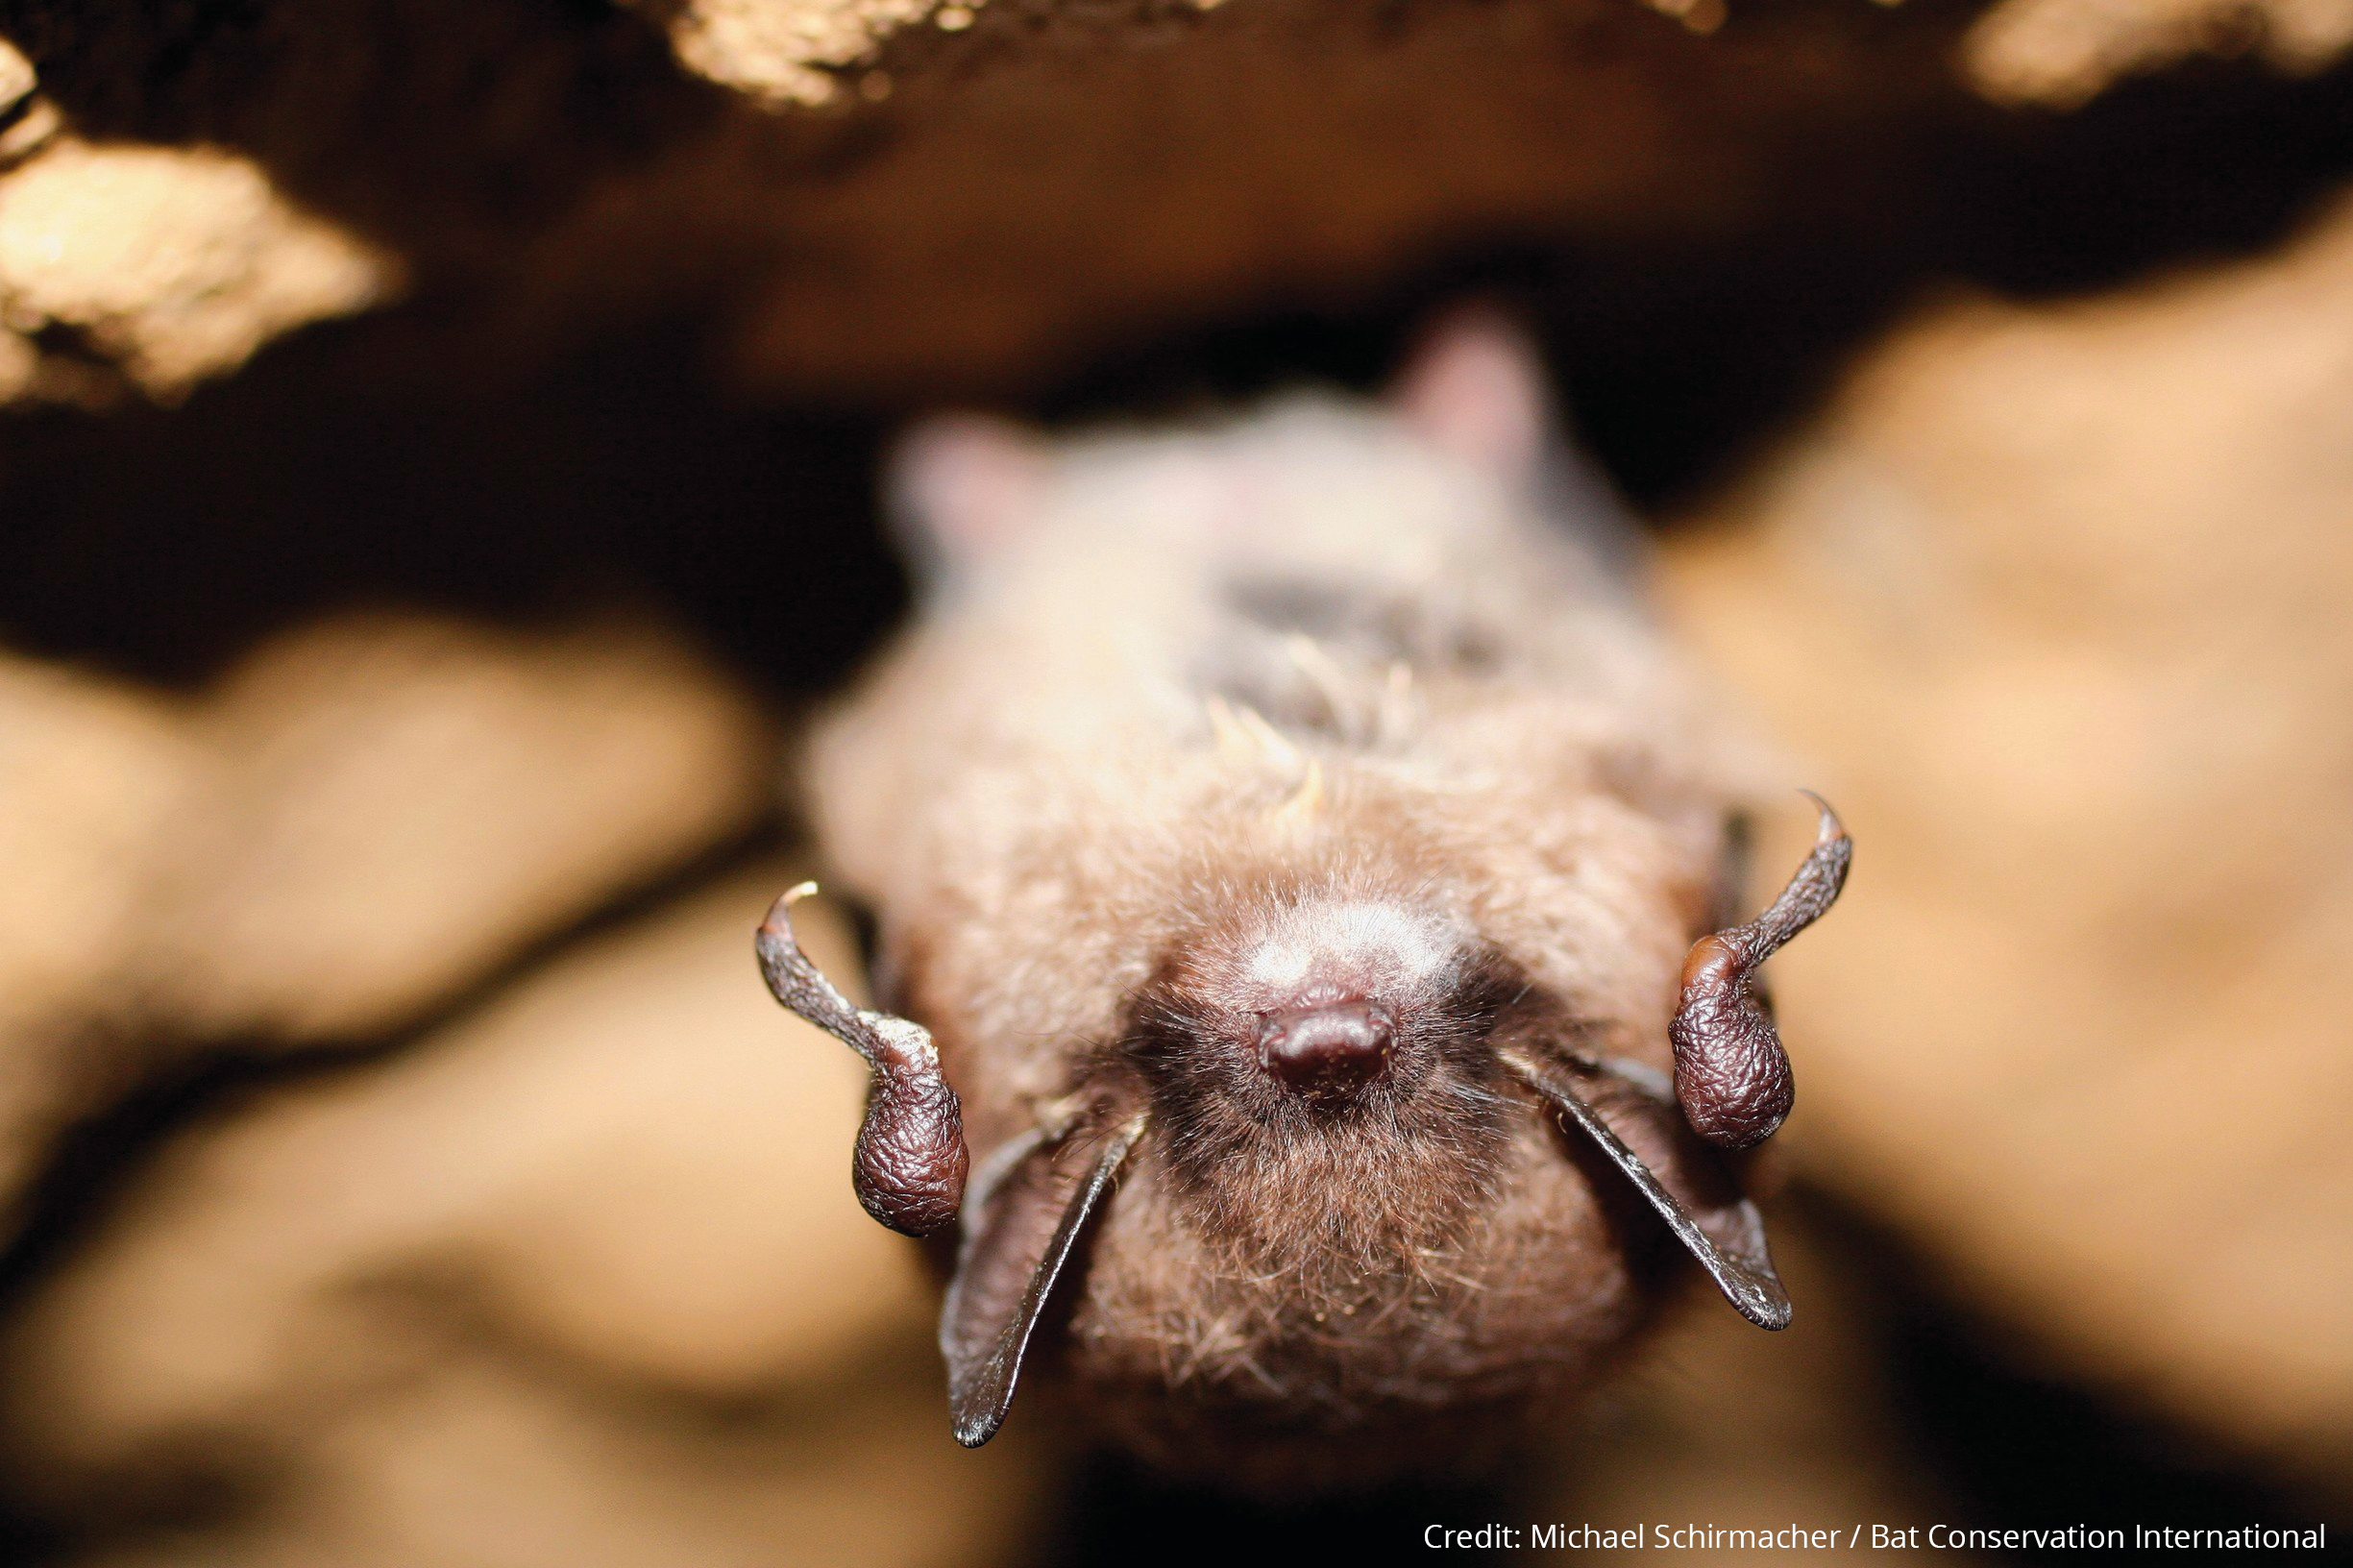 108608-23_a_little_brown_myotis_shows_symptoms_of_white-nose_syndrome_on_its_chin._credit__michael_schirmacher___bat_conservation_international